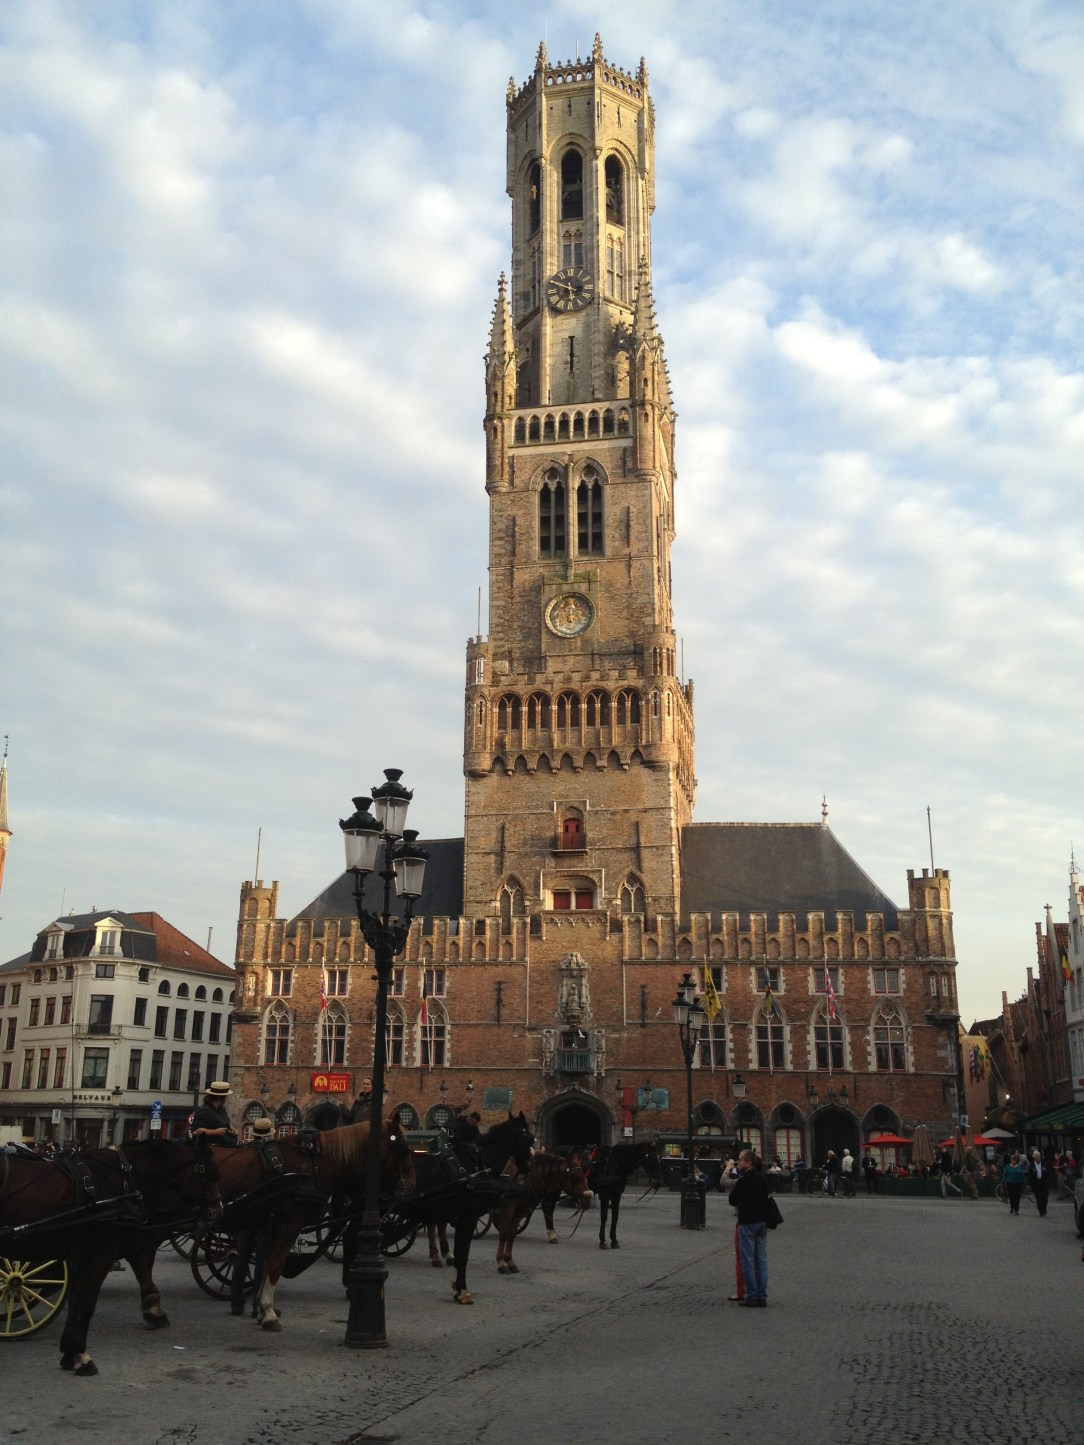 Medieval bell tower called the Belfry in the centre of Bruges